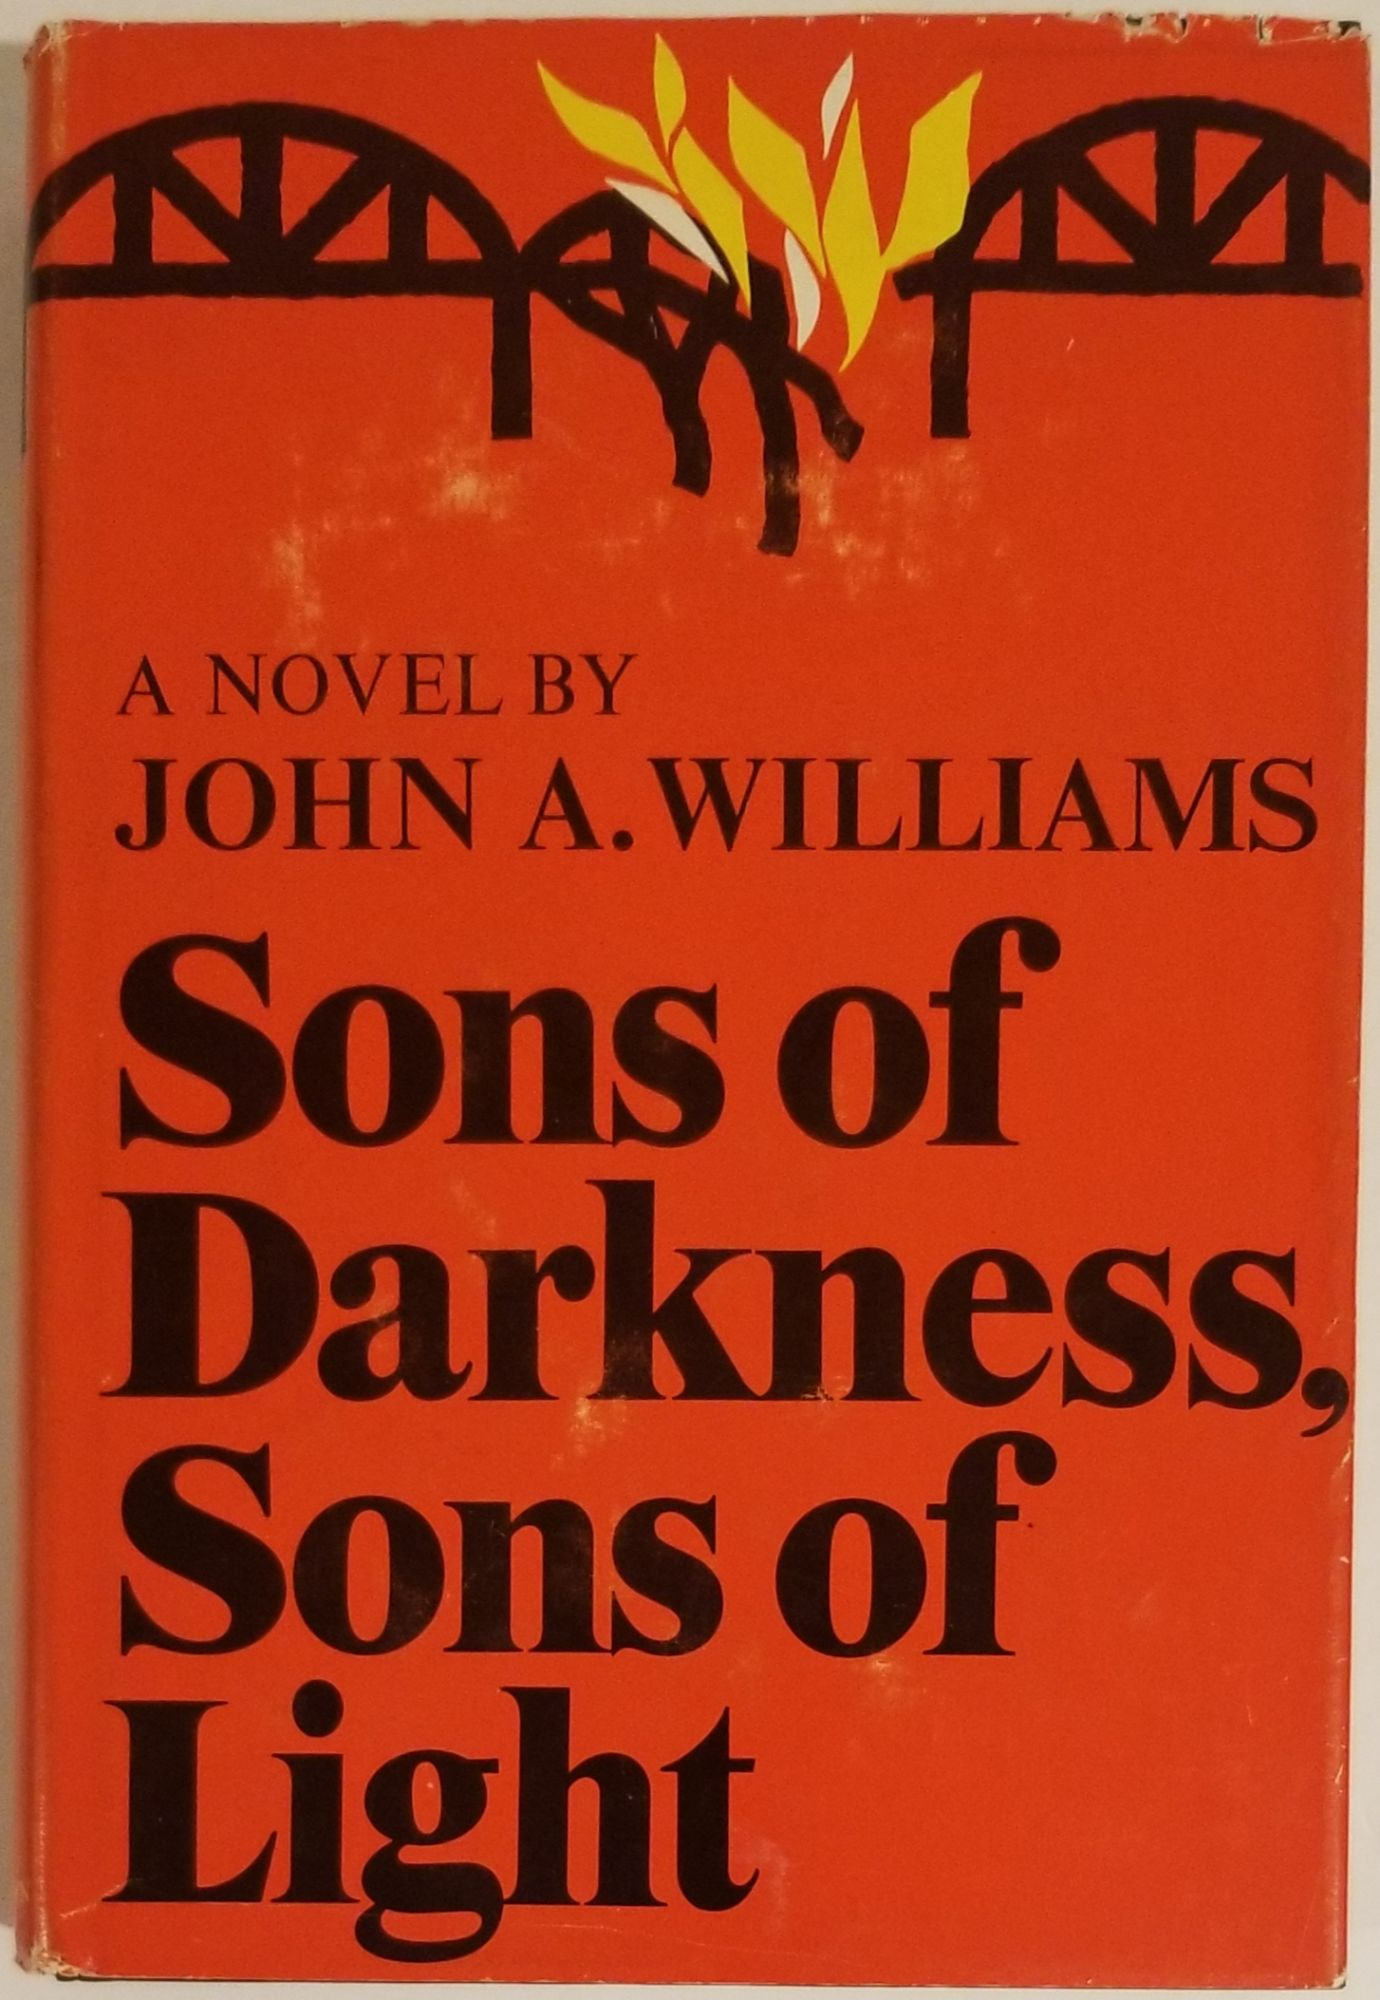 SONS OF DARKNESS, SONS OF LIGHT. John A. Williams.